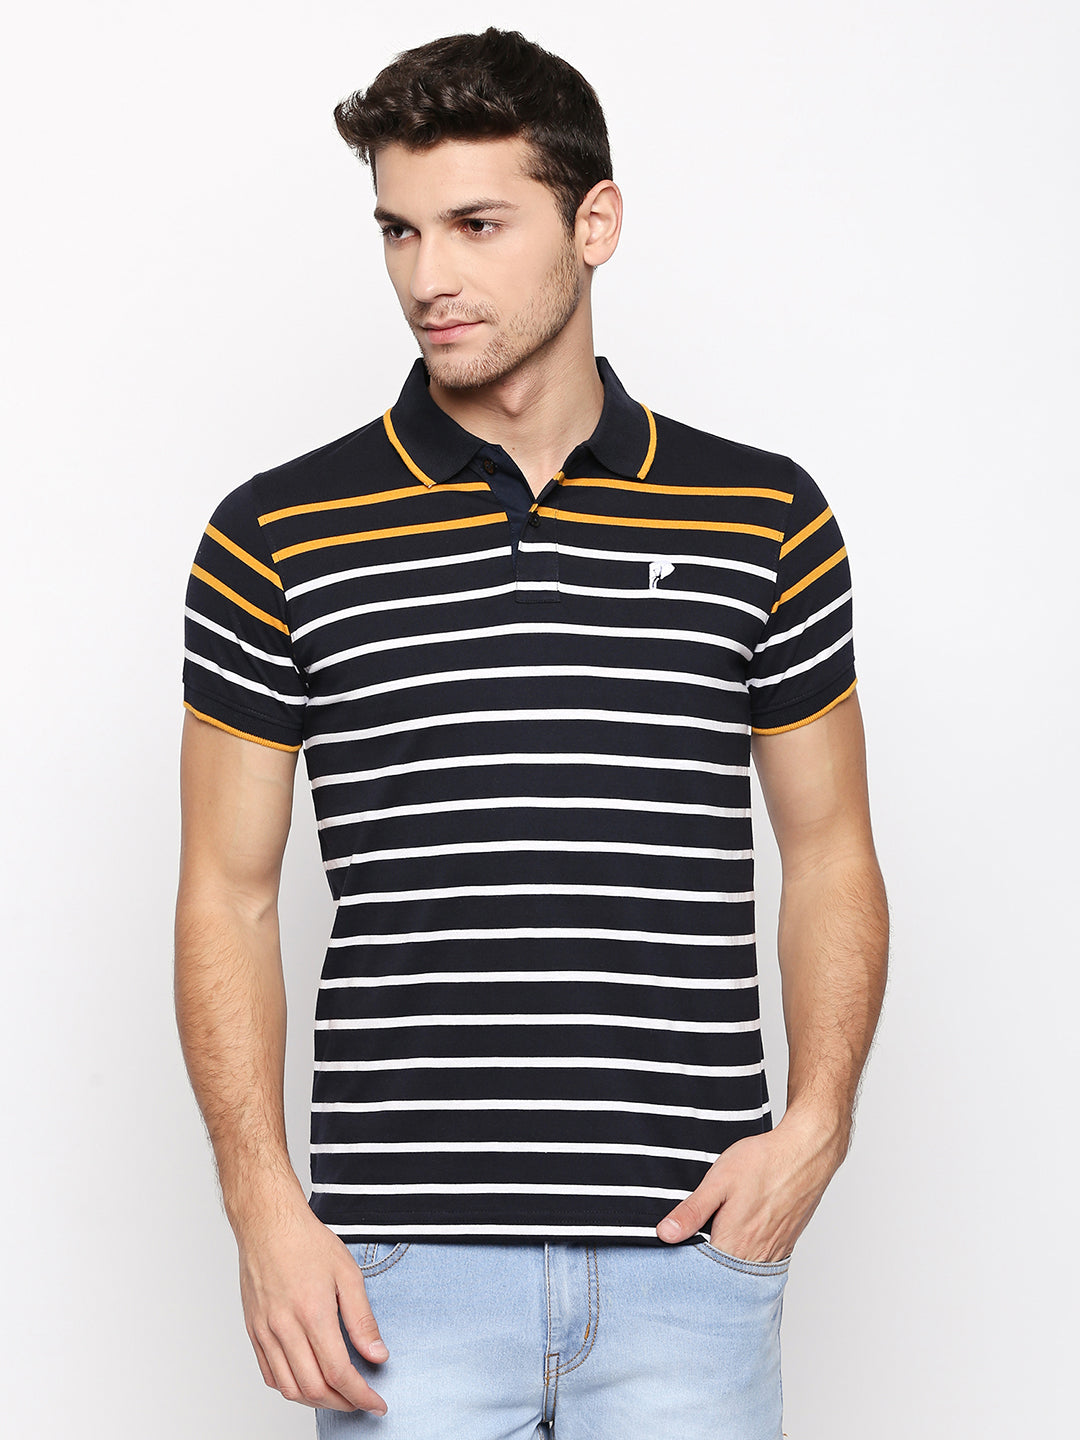 ZIDO Regular Fit Cotton Blend Striped T-Shirt for Men's TSHSTP308